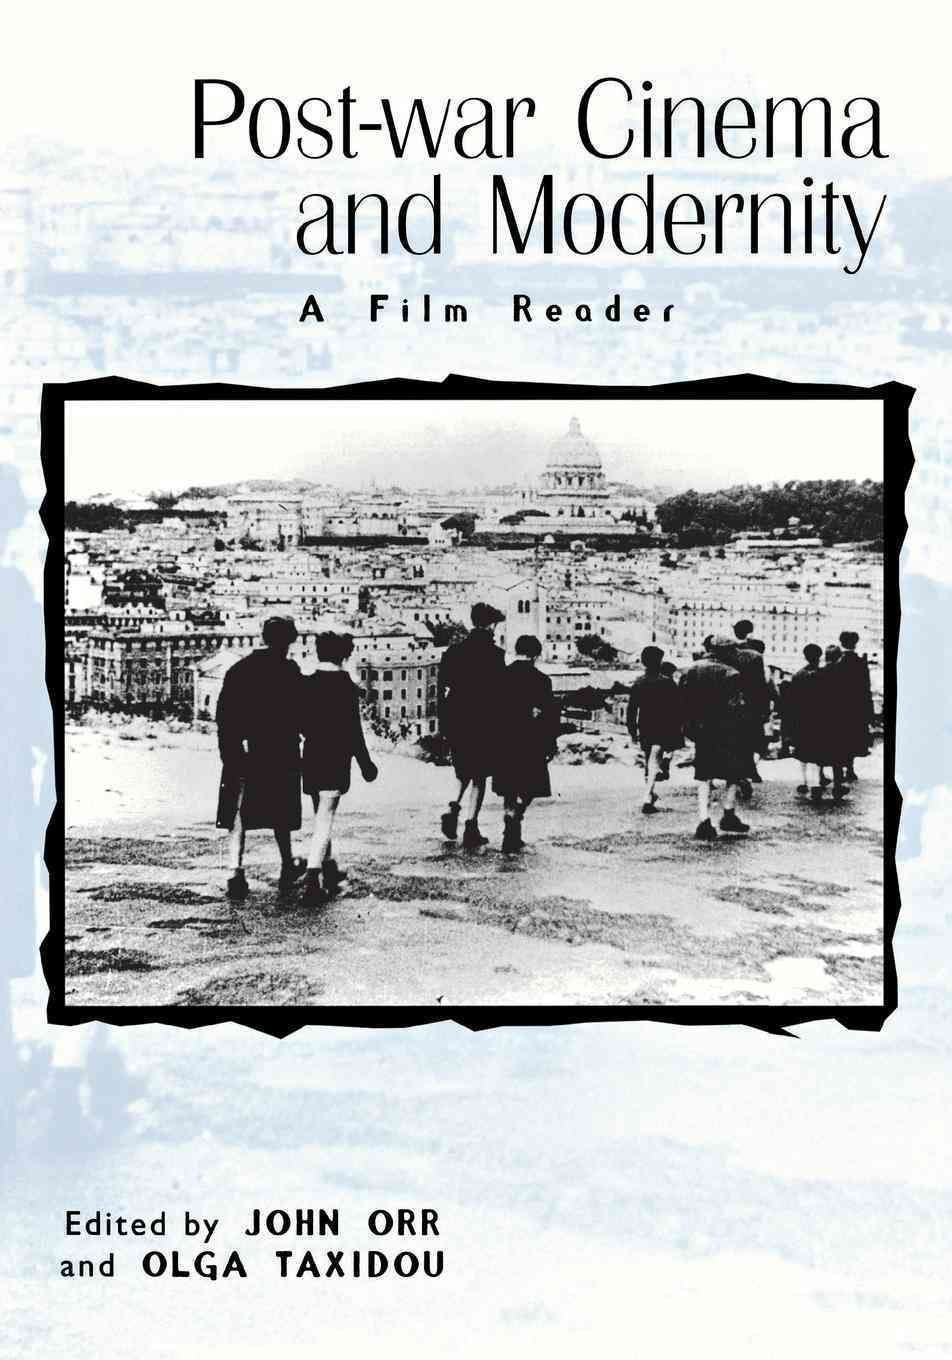 Post-War Cinema and Modernity - John Orr